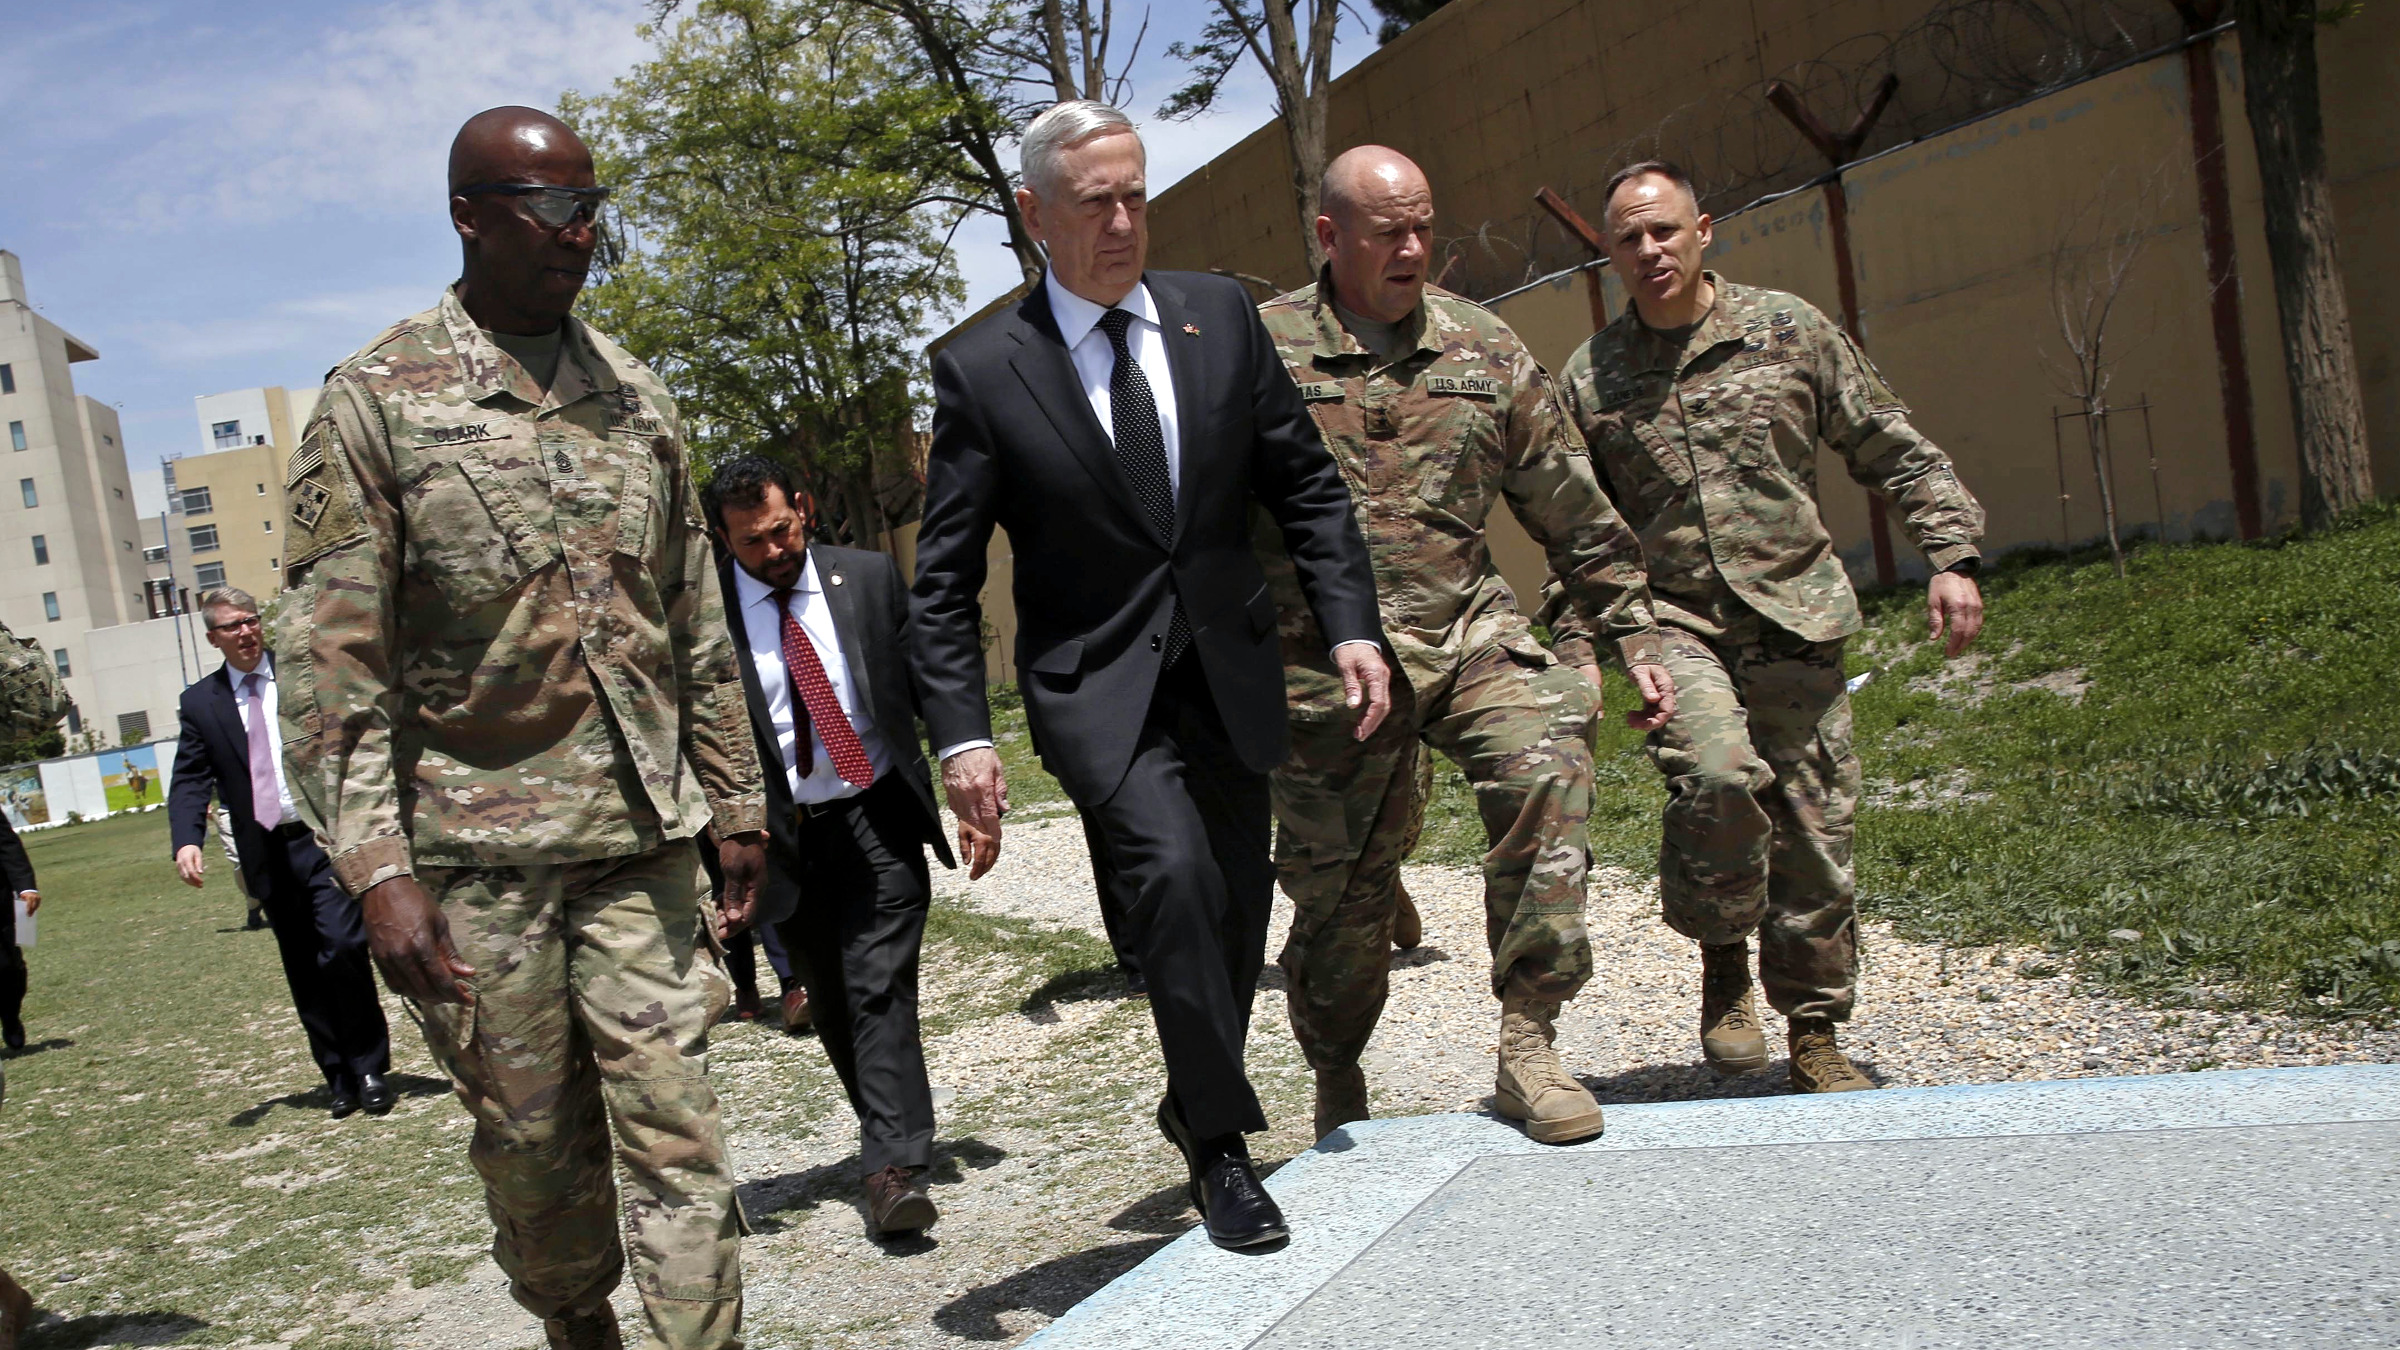 /// U.S. Defense Secretary James Mattis (3rd R) is greeted by U.S. Army Command Sergeant Major David Clark (L) and General Christopher Haas (2nd R) as he arrives at Resolute Support headquarters in Kabul, Afghanistan April 24, 2017.